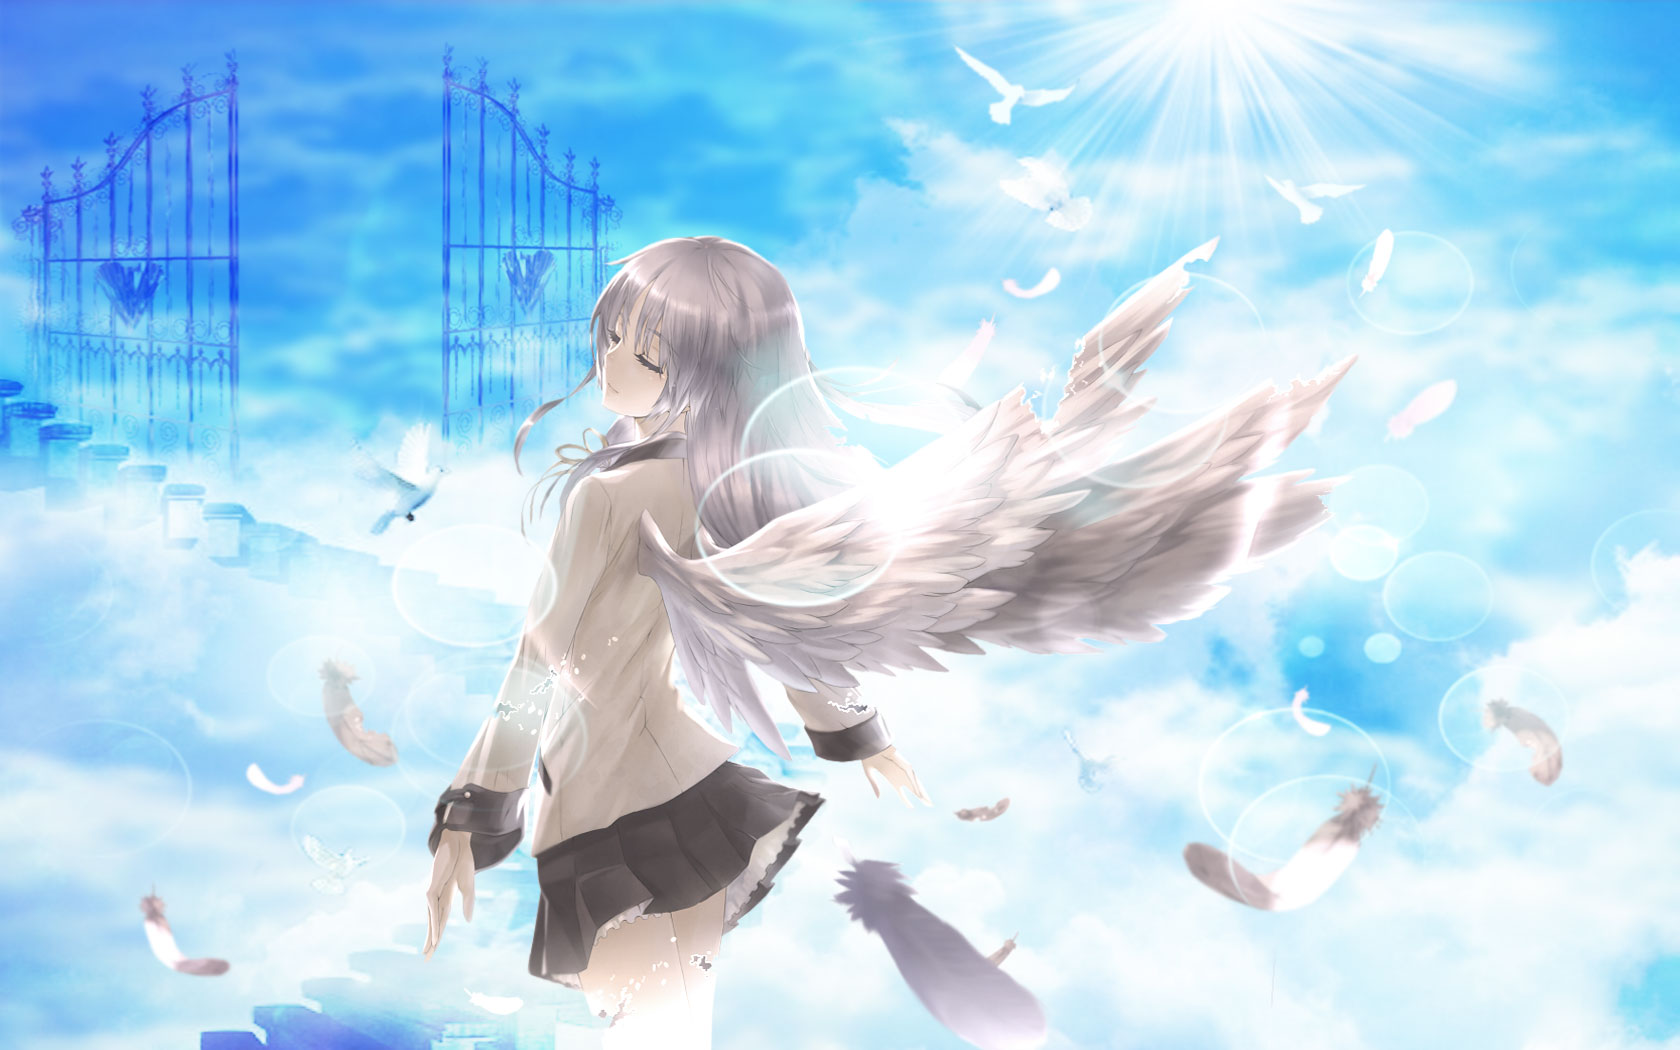 angel wallpapers for laptops - photo #18